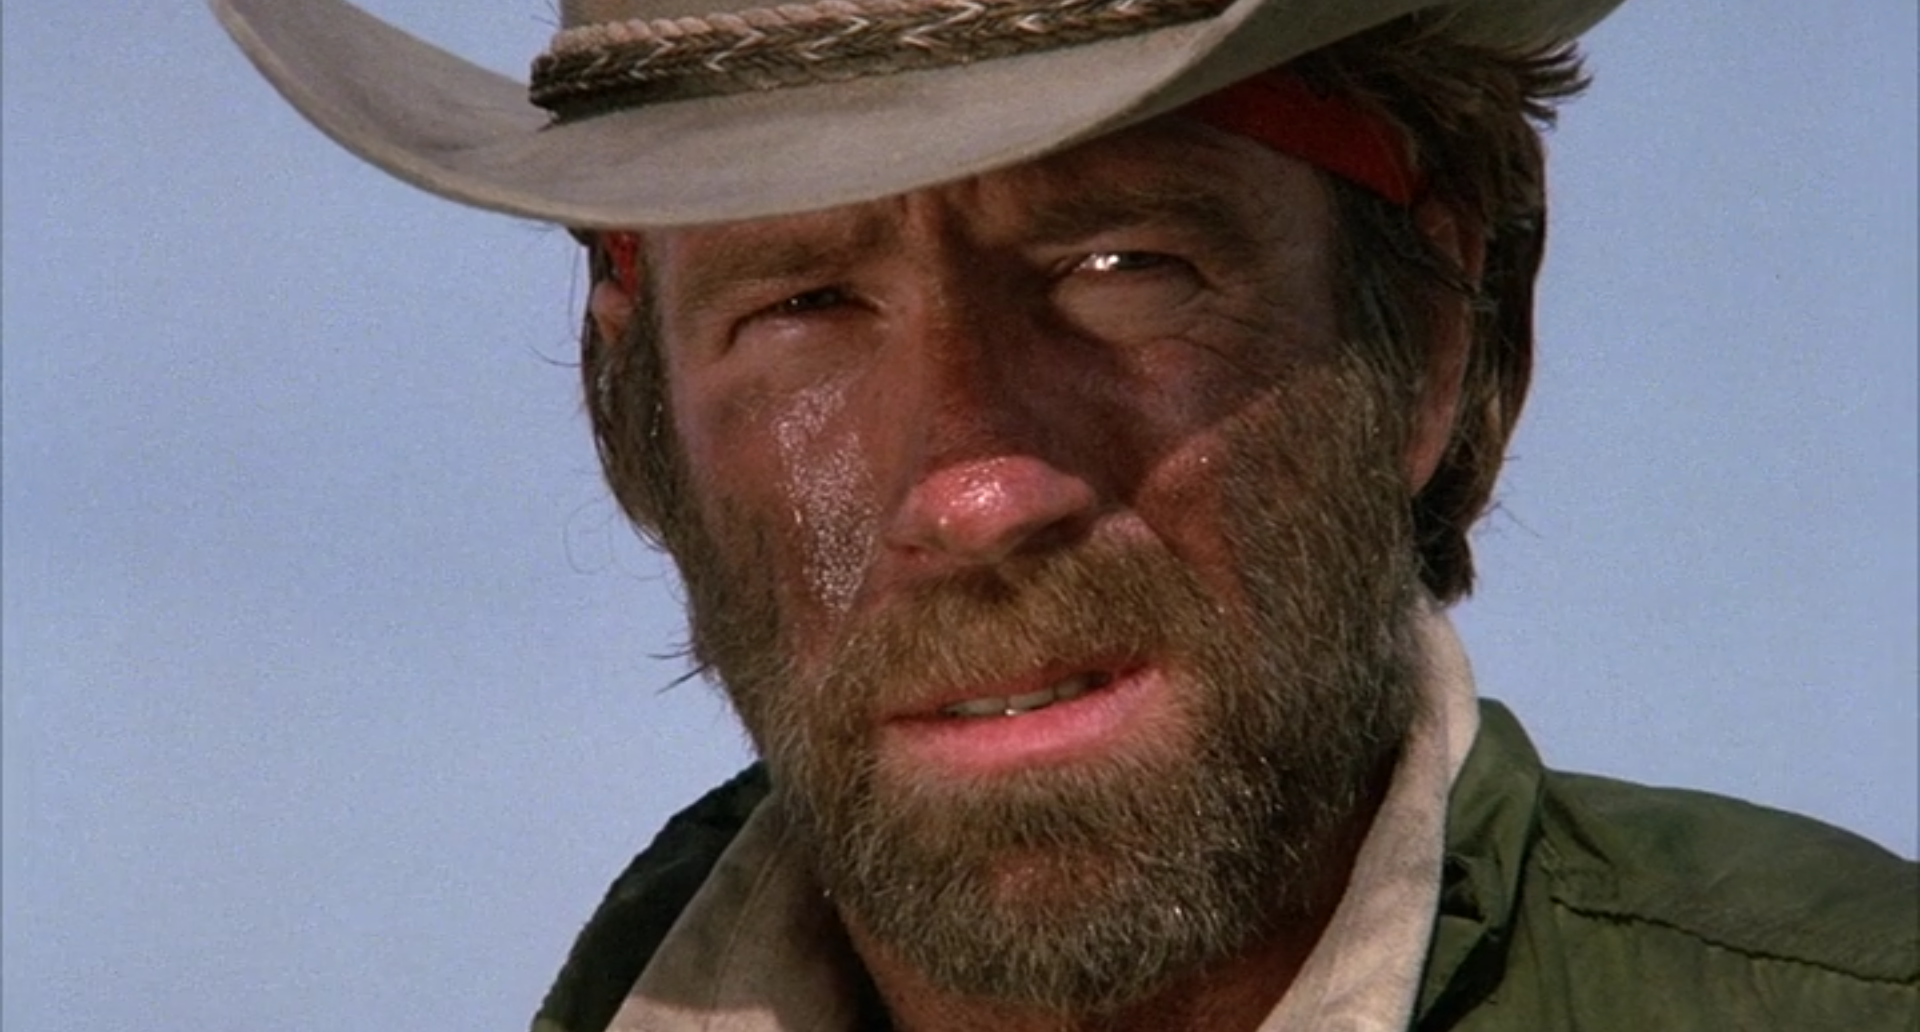 Close up of Chuck Norris as J.J. McQuade. Head only, in cowboy hat, full beard, and very dirty.